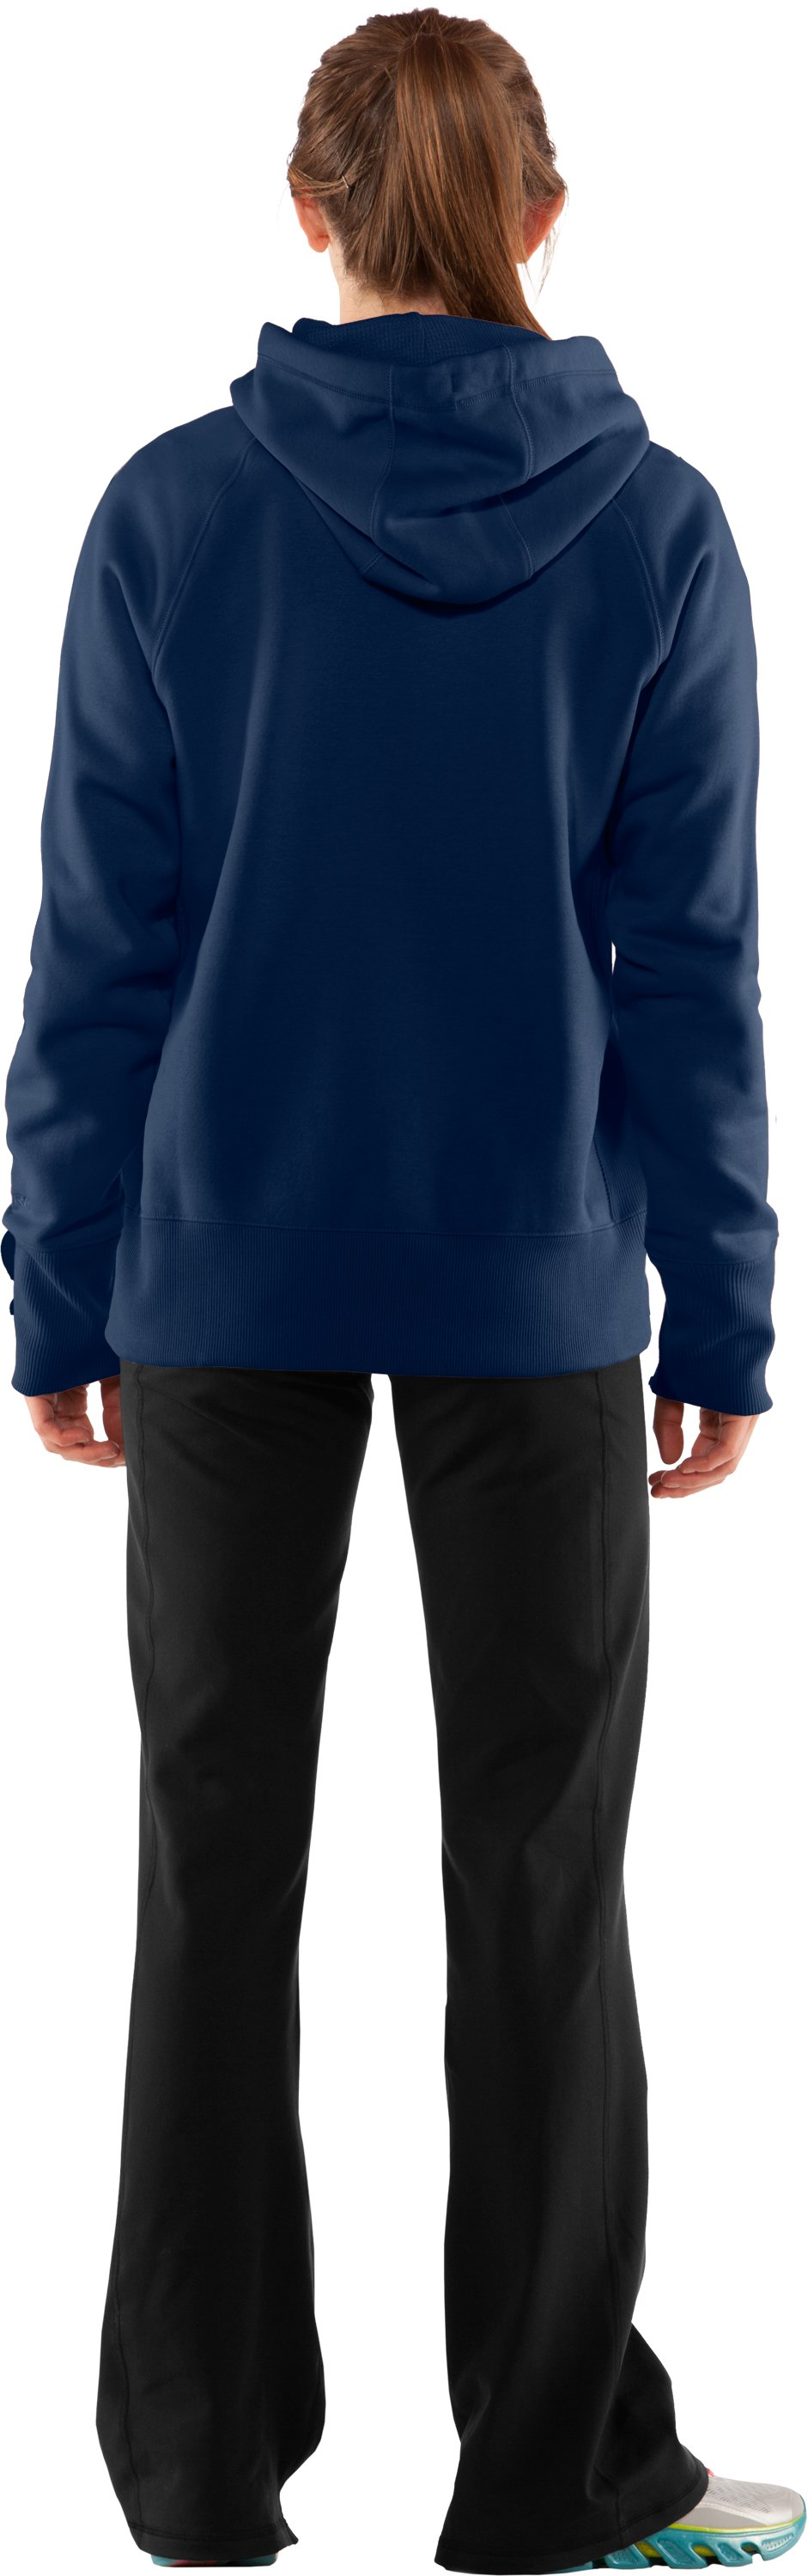 Women's Charged Cotton® Storm Hoodie, Academy, Back